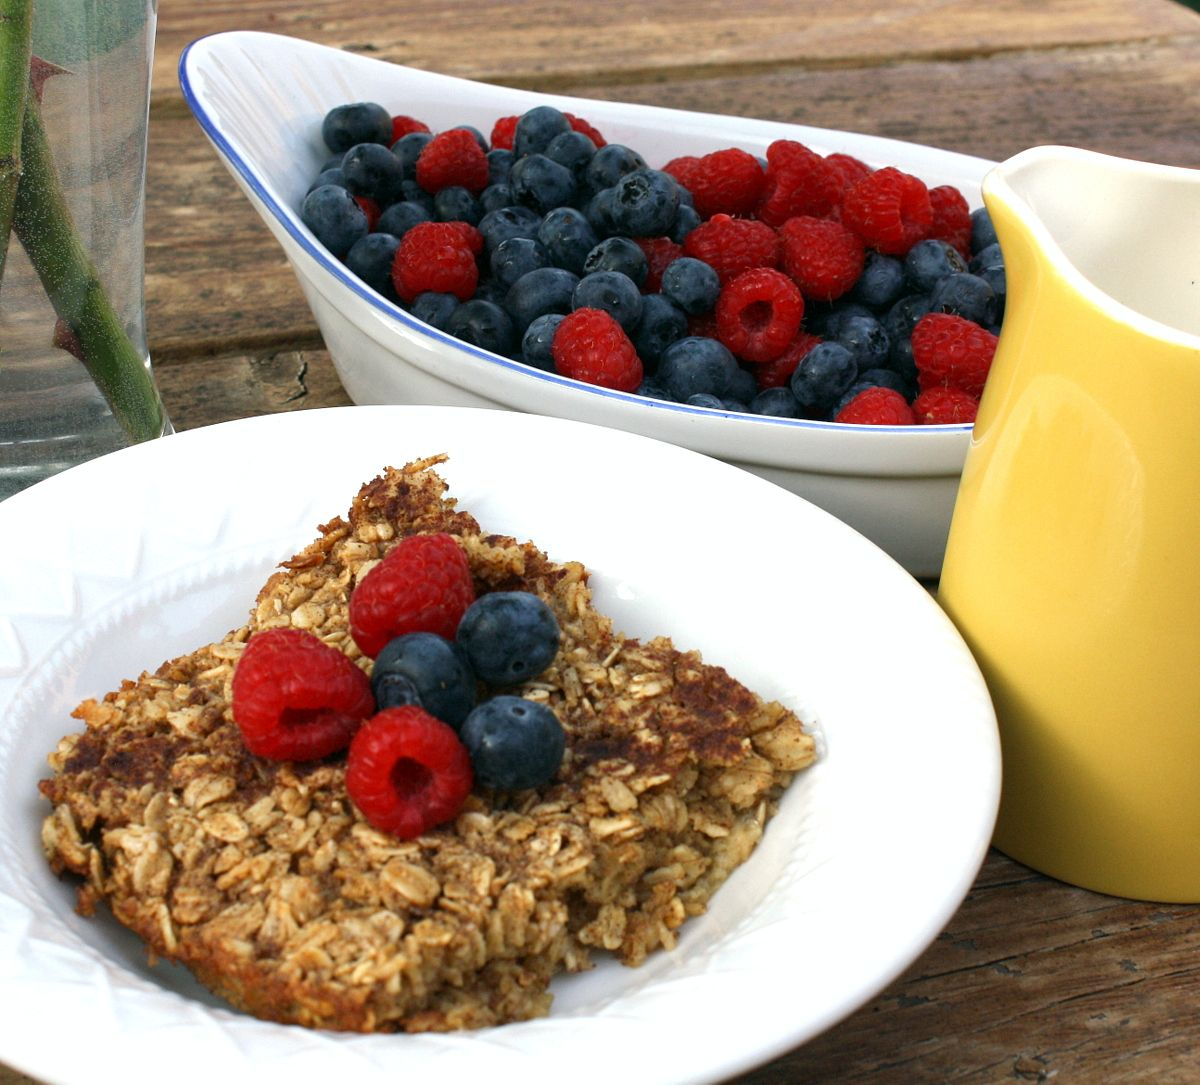 Yummy Baked Oatmeal (Ingredients oats, brown sugar